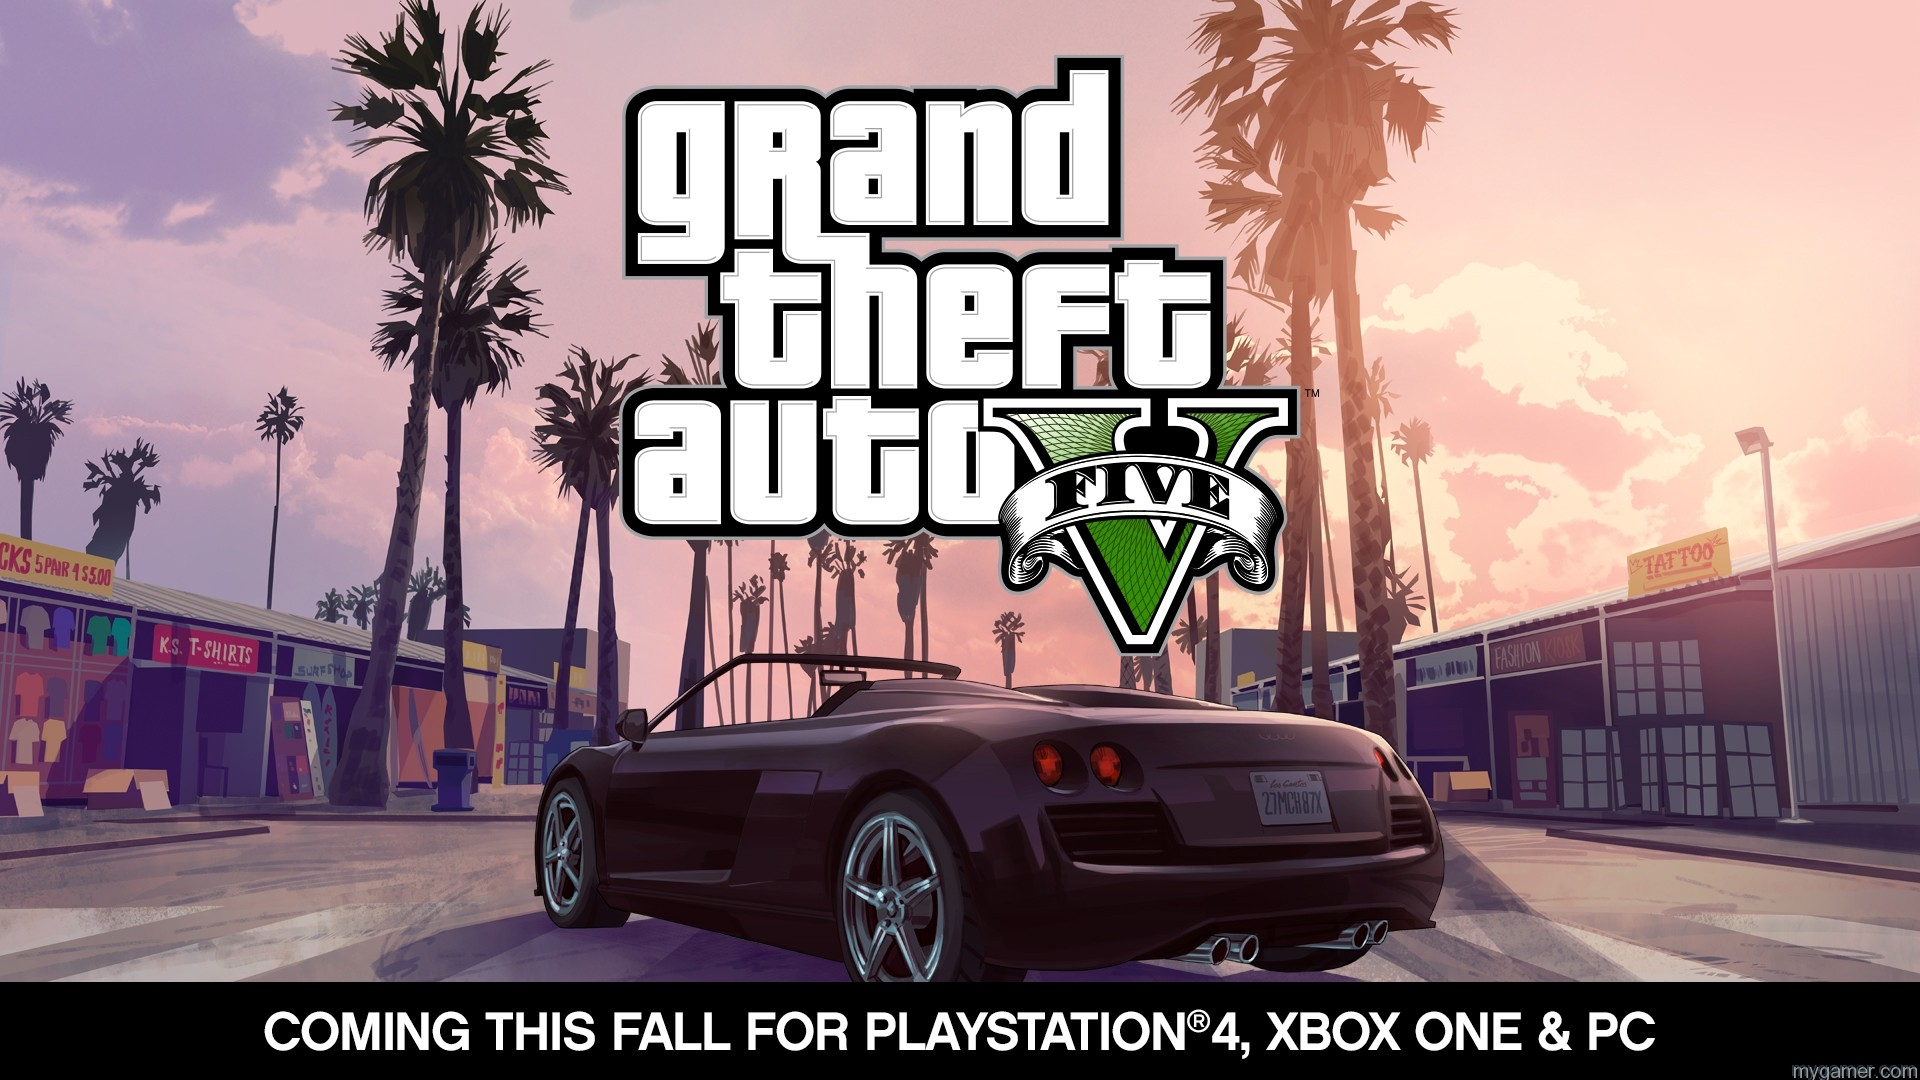 Rockstar Games Announces Grand Theft Auto VR Coming this Fall to PlayStationR4, Xbox One and PC Rockstar Games Announces Grand Theft Auto VR Coming this Fall to PlayStationR4, Xbox One and PC GTAV 1920x1080